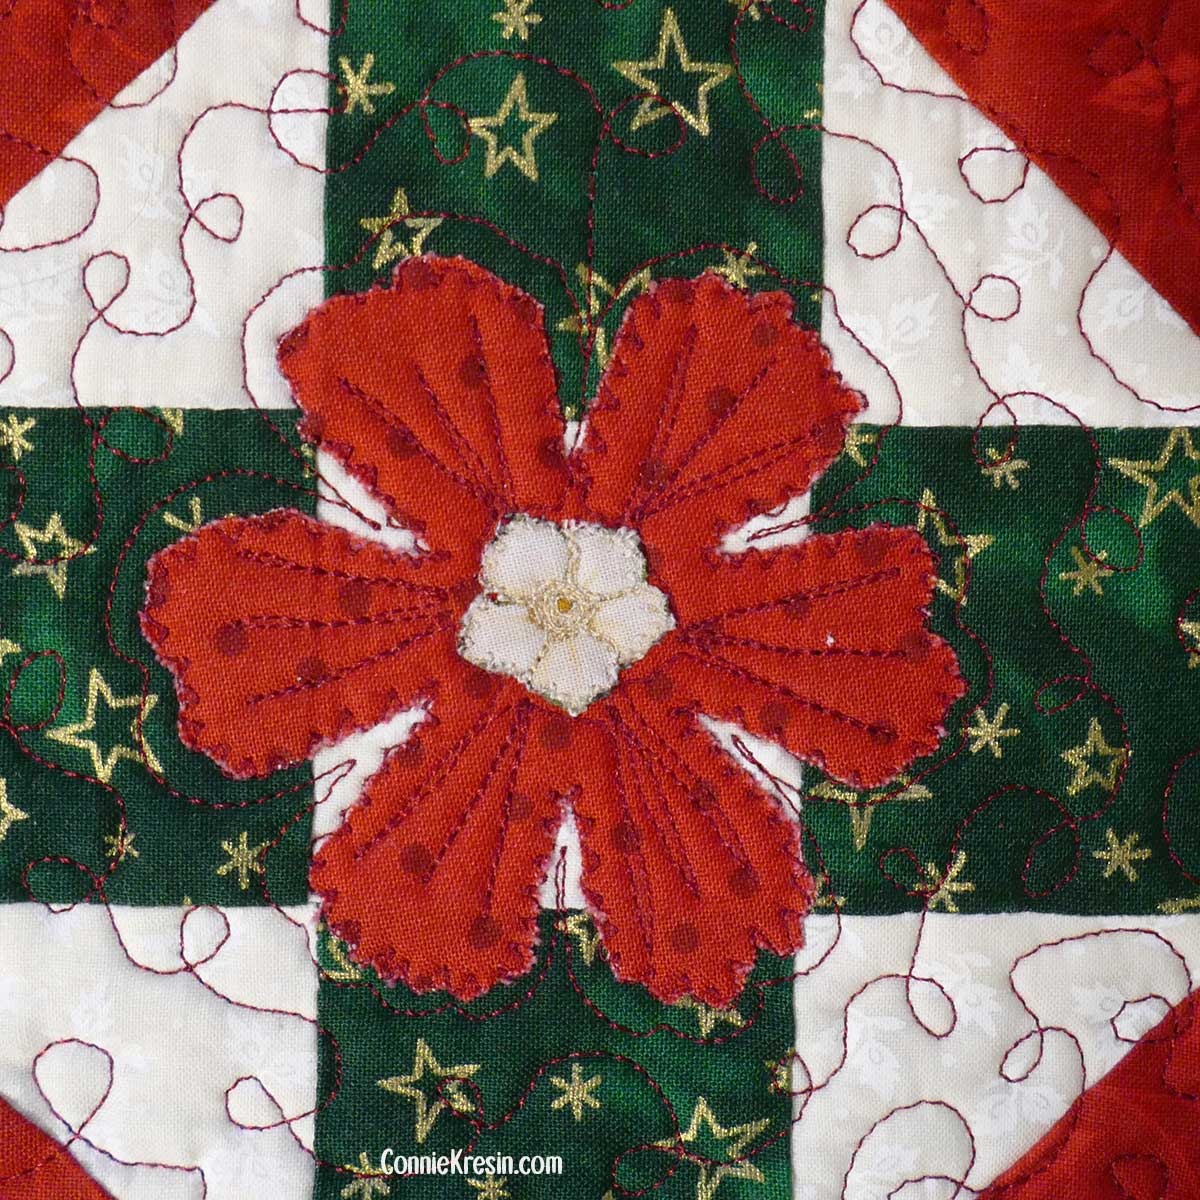 Closeup of the applique and quilting on the Christmas mug rug